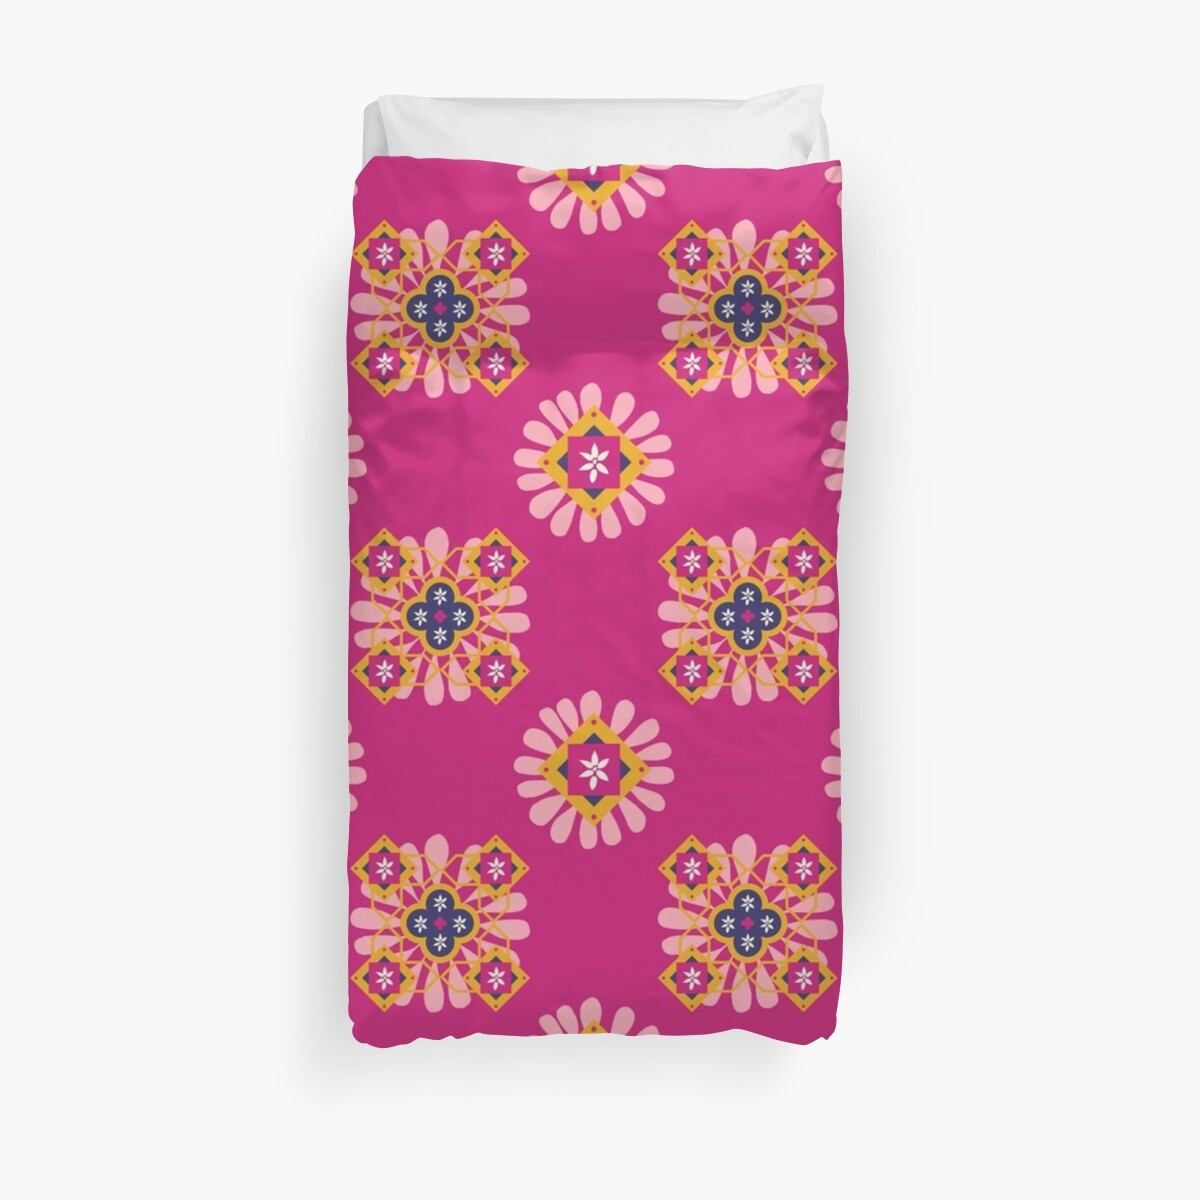 Quot Living The Good Life Quot Duvet Covers By Living The Good